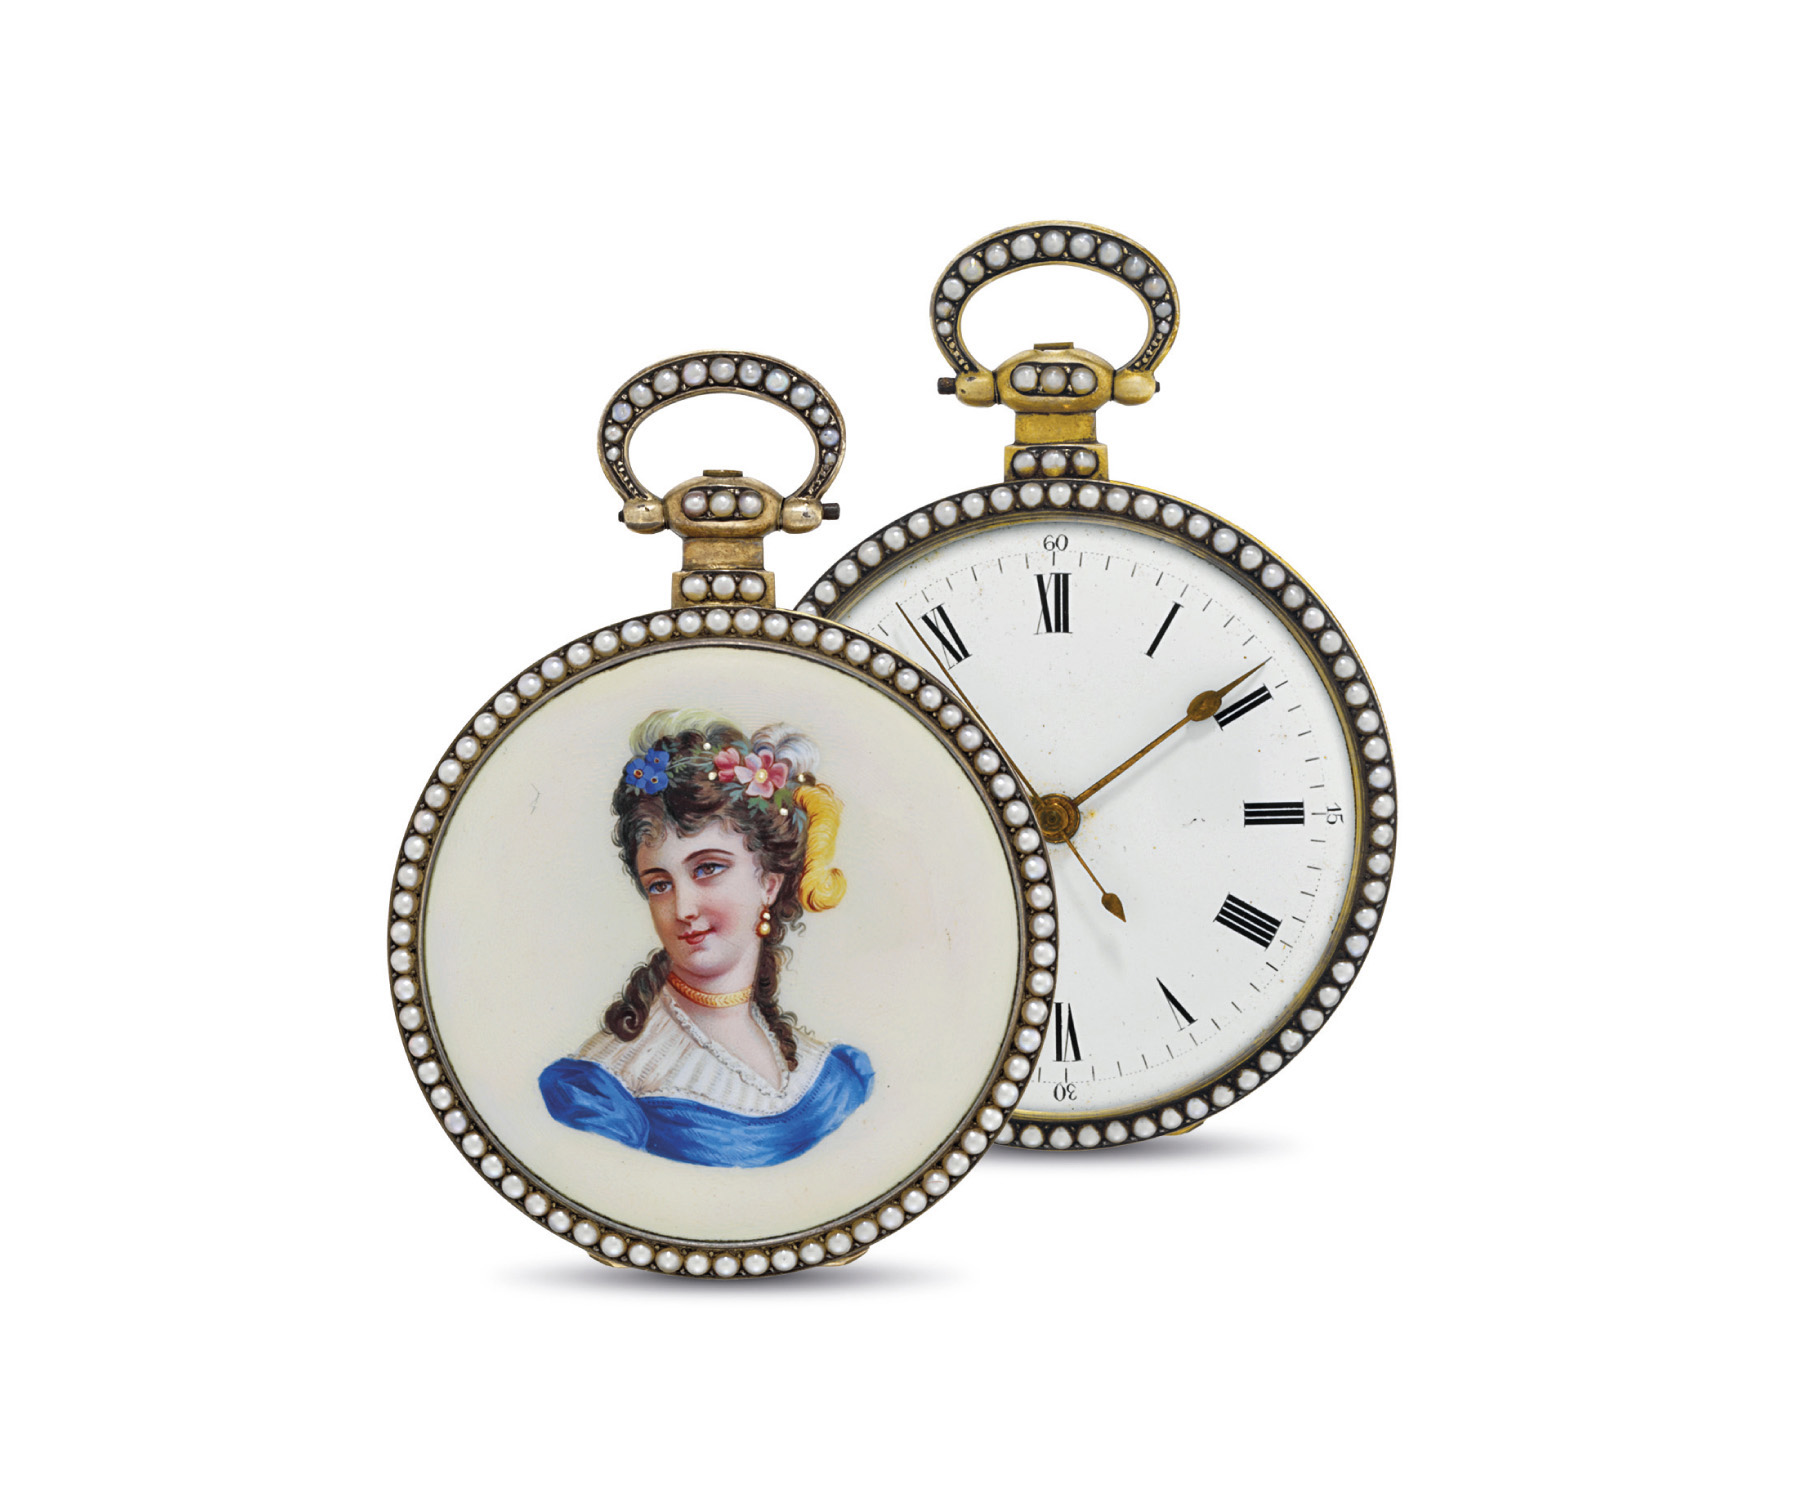 JUVET. AN ATTRACTIVE GILT, ENAMEL AND PEARL-SET OPENFACE KEYWOUND DUPLEX WATCH WITH CENTRE SECONDS, MADE FOR THE CHINESE MARKET